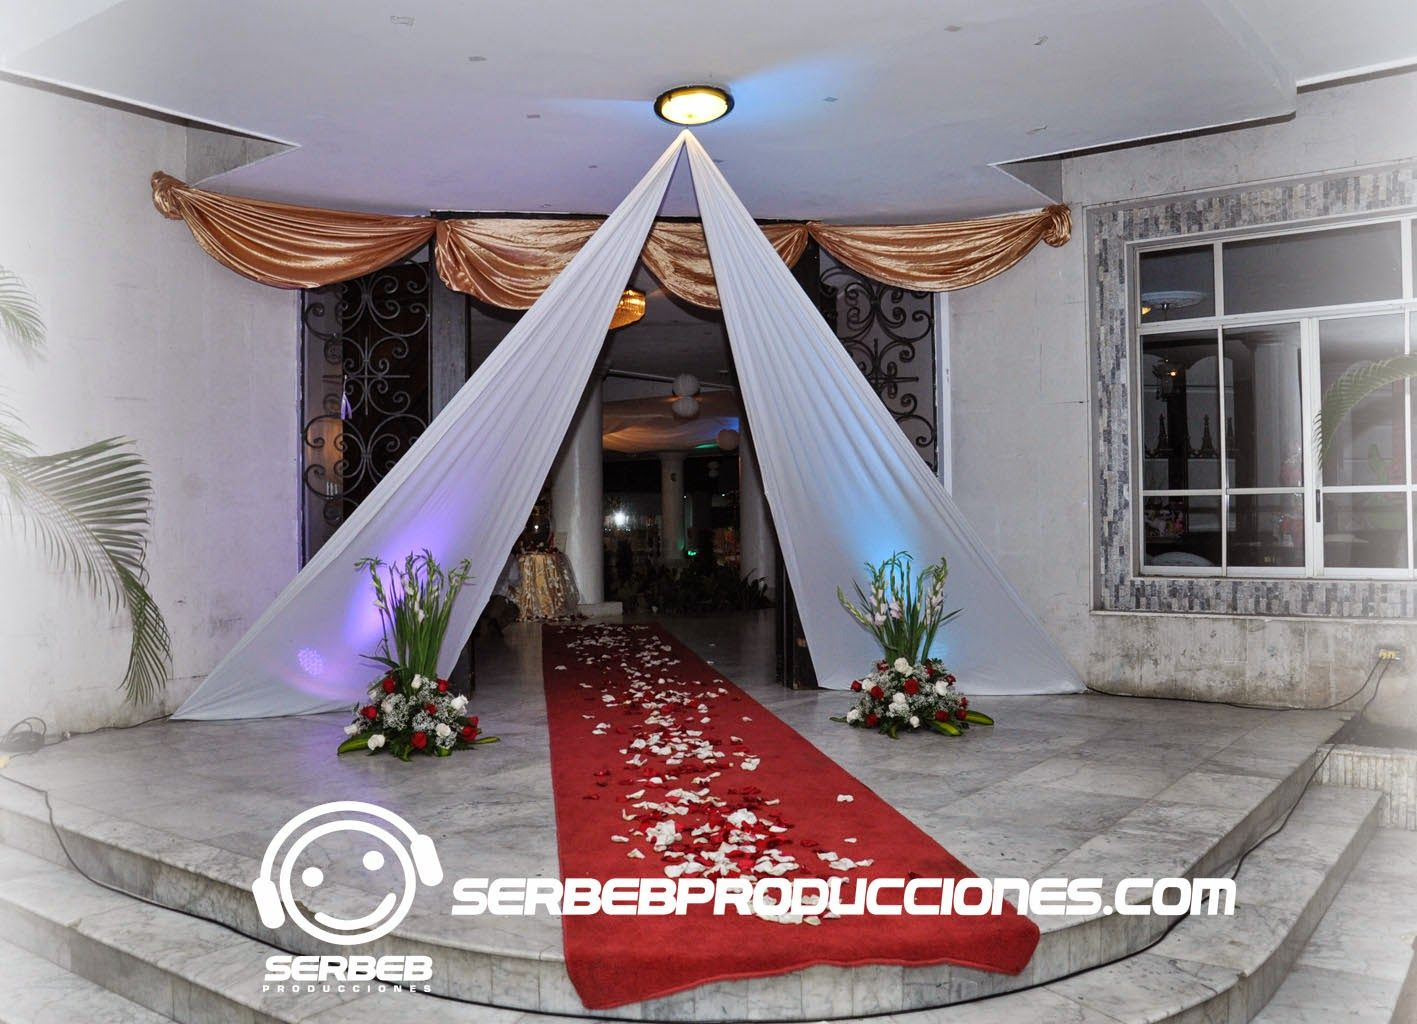 Decoracion de salon de bodas 2015 buscar con google - Decoracion para salones ...